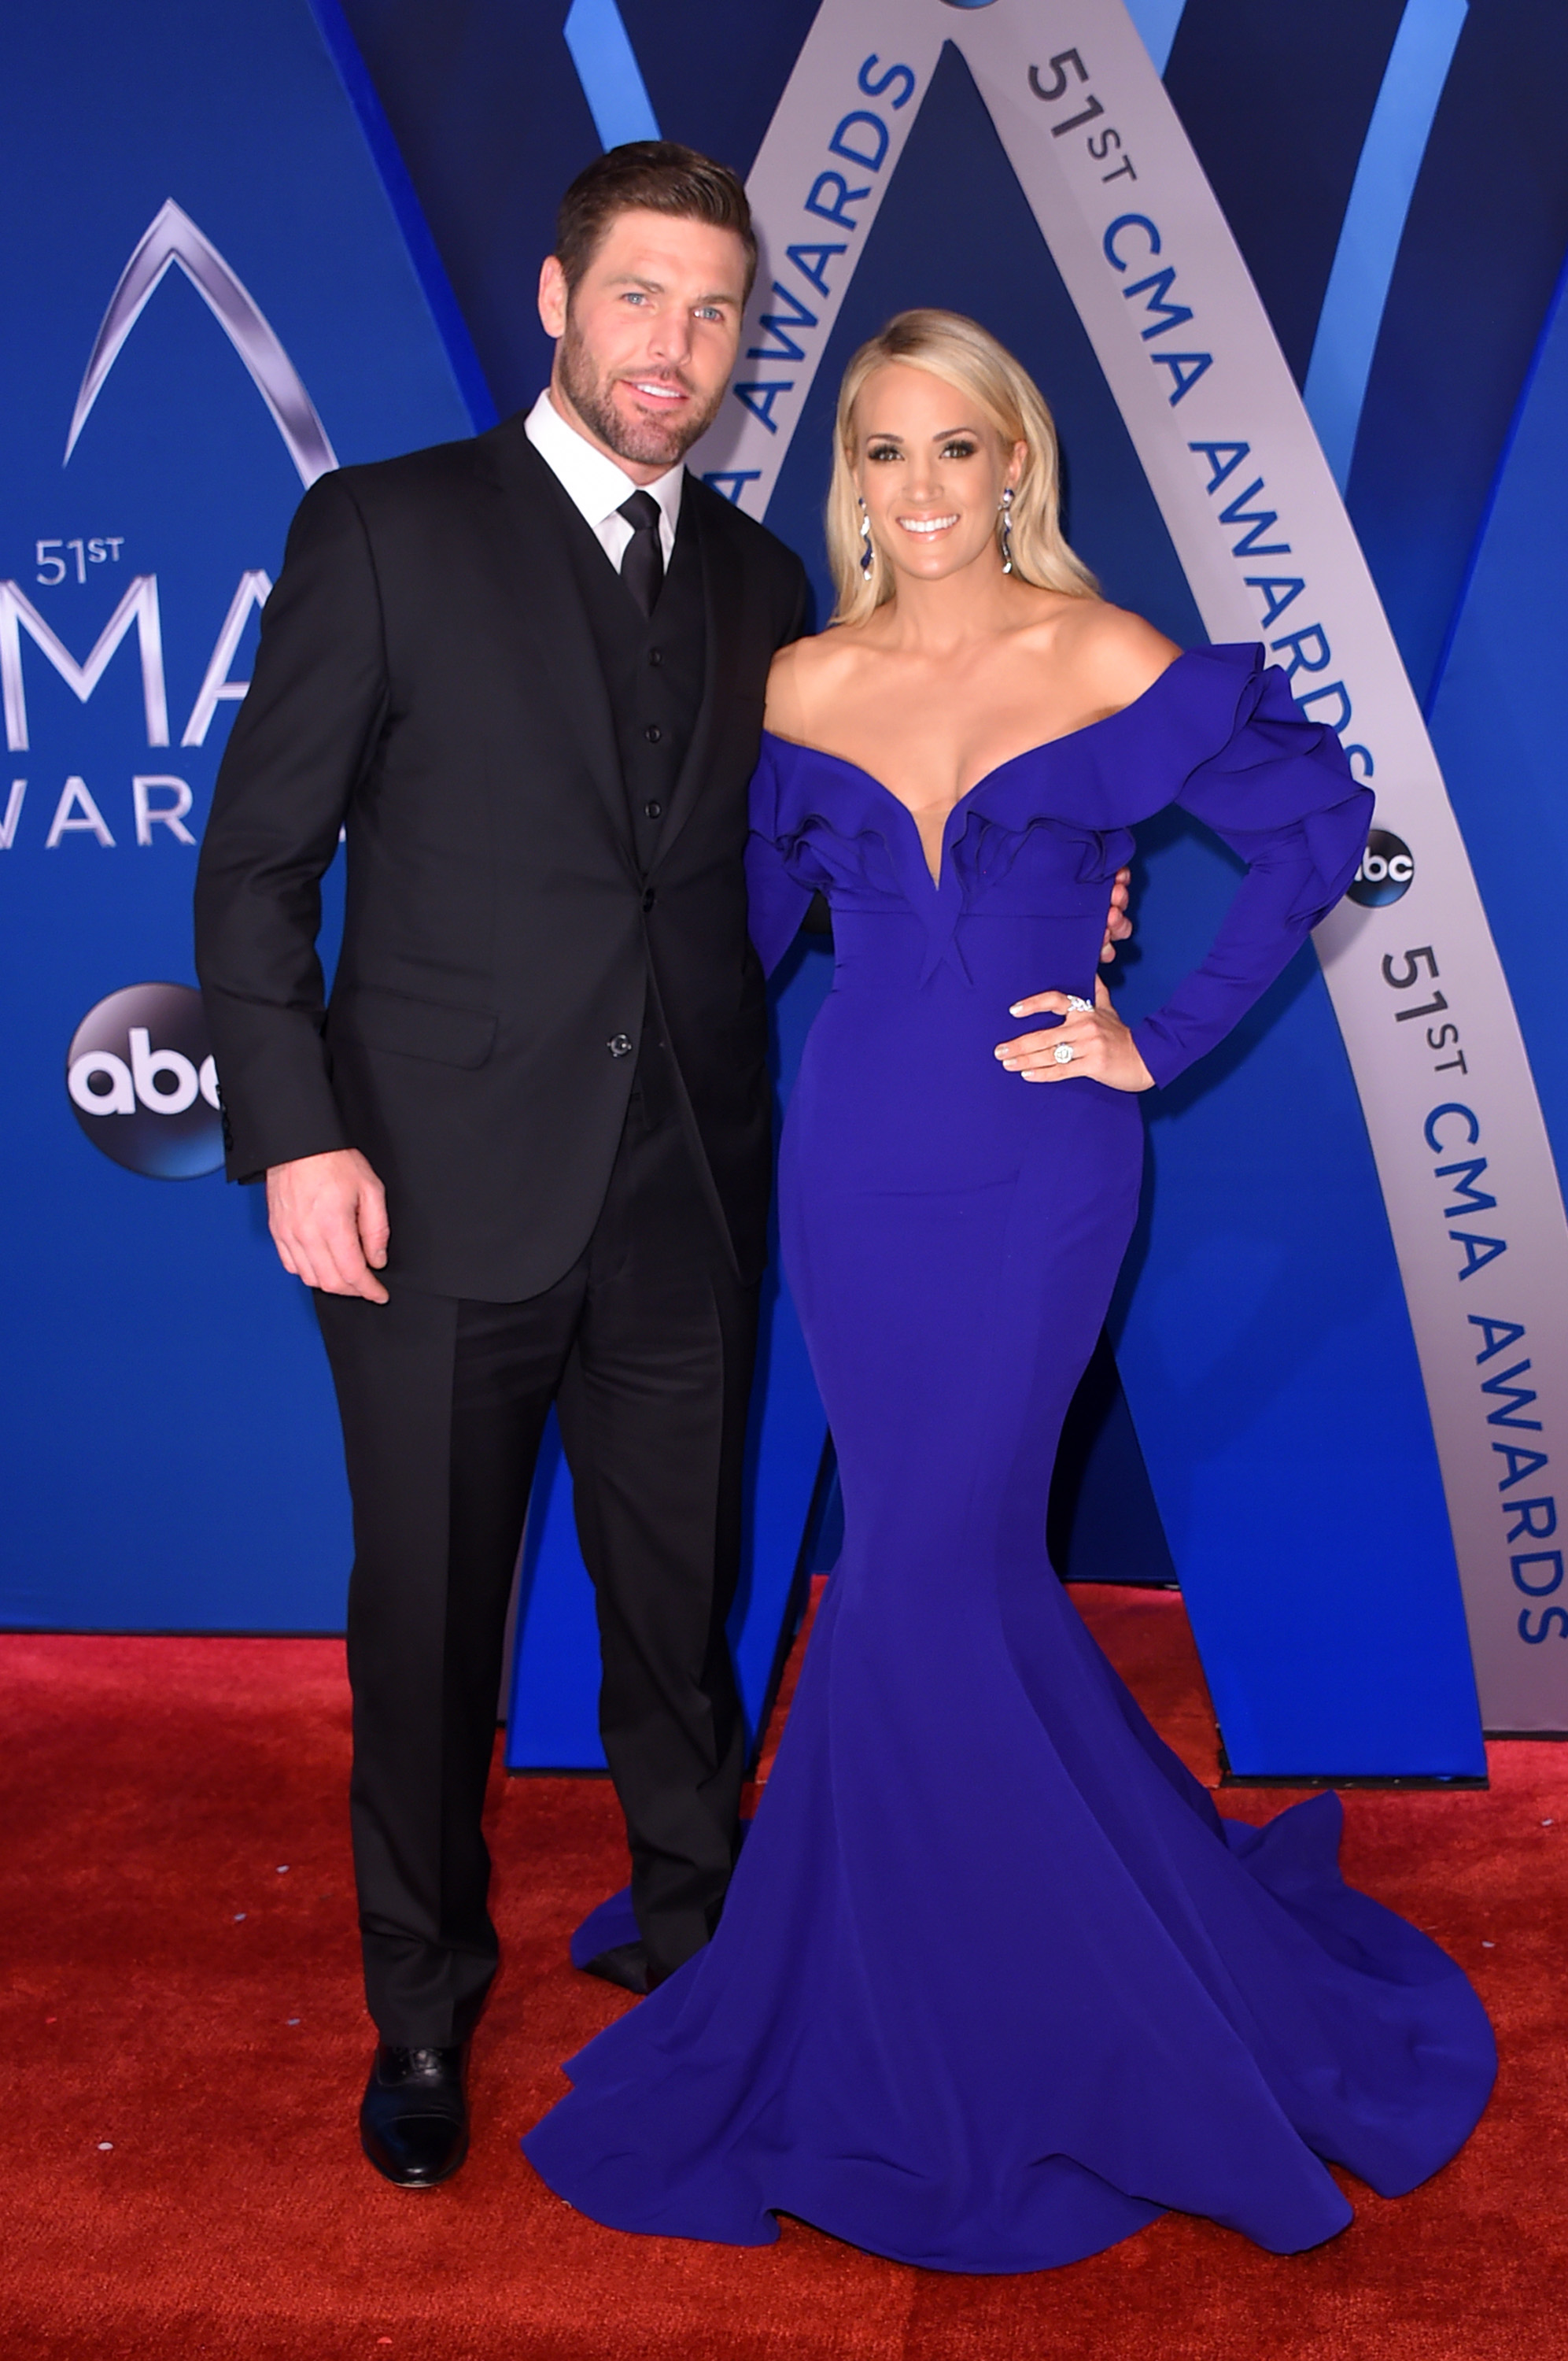 NHL player Mike Fisher and singer-songwriter Carrie Underwood attend the 51st annual CMA Awards at the Bridgestone Arena on November 8, 2017, in Nashville, Tennessee. (Getty Images)